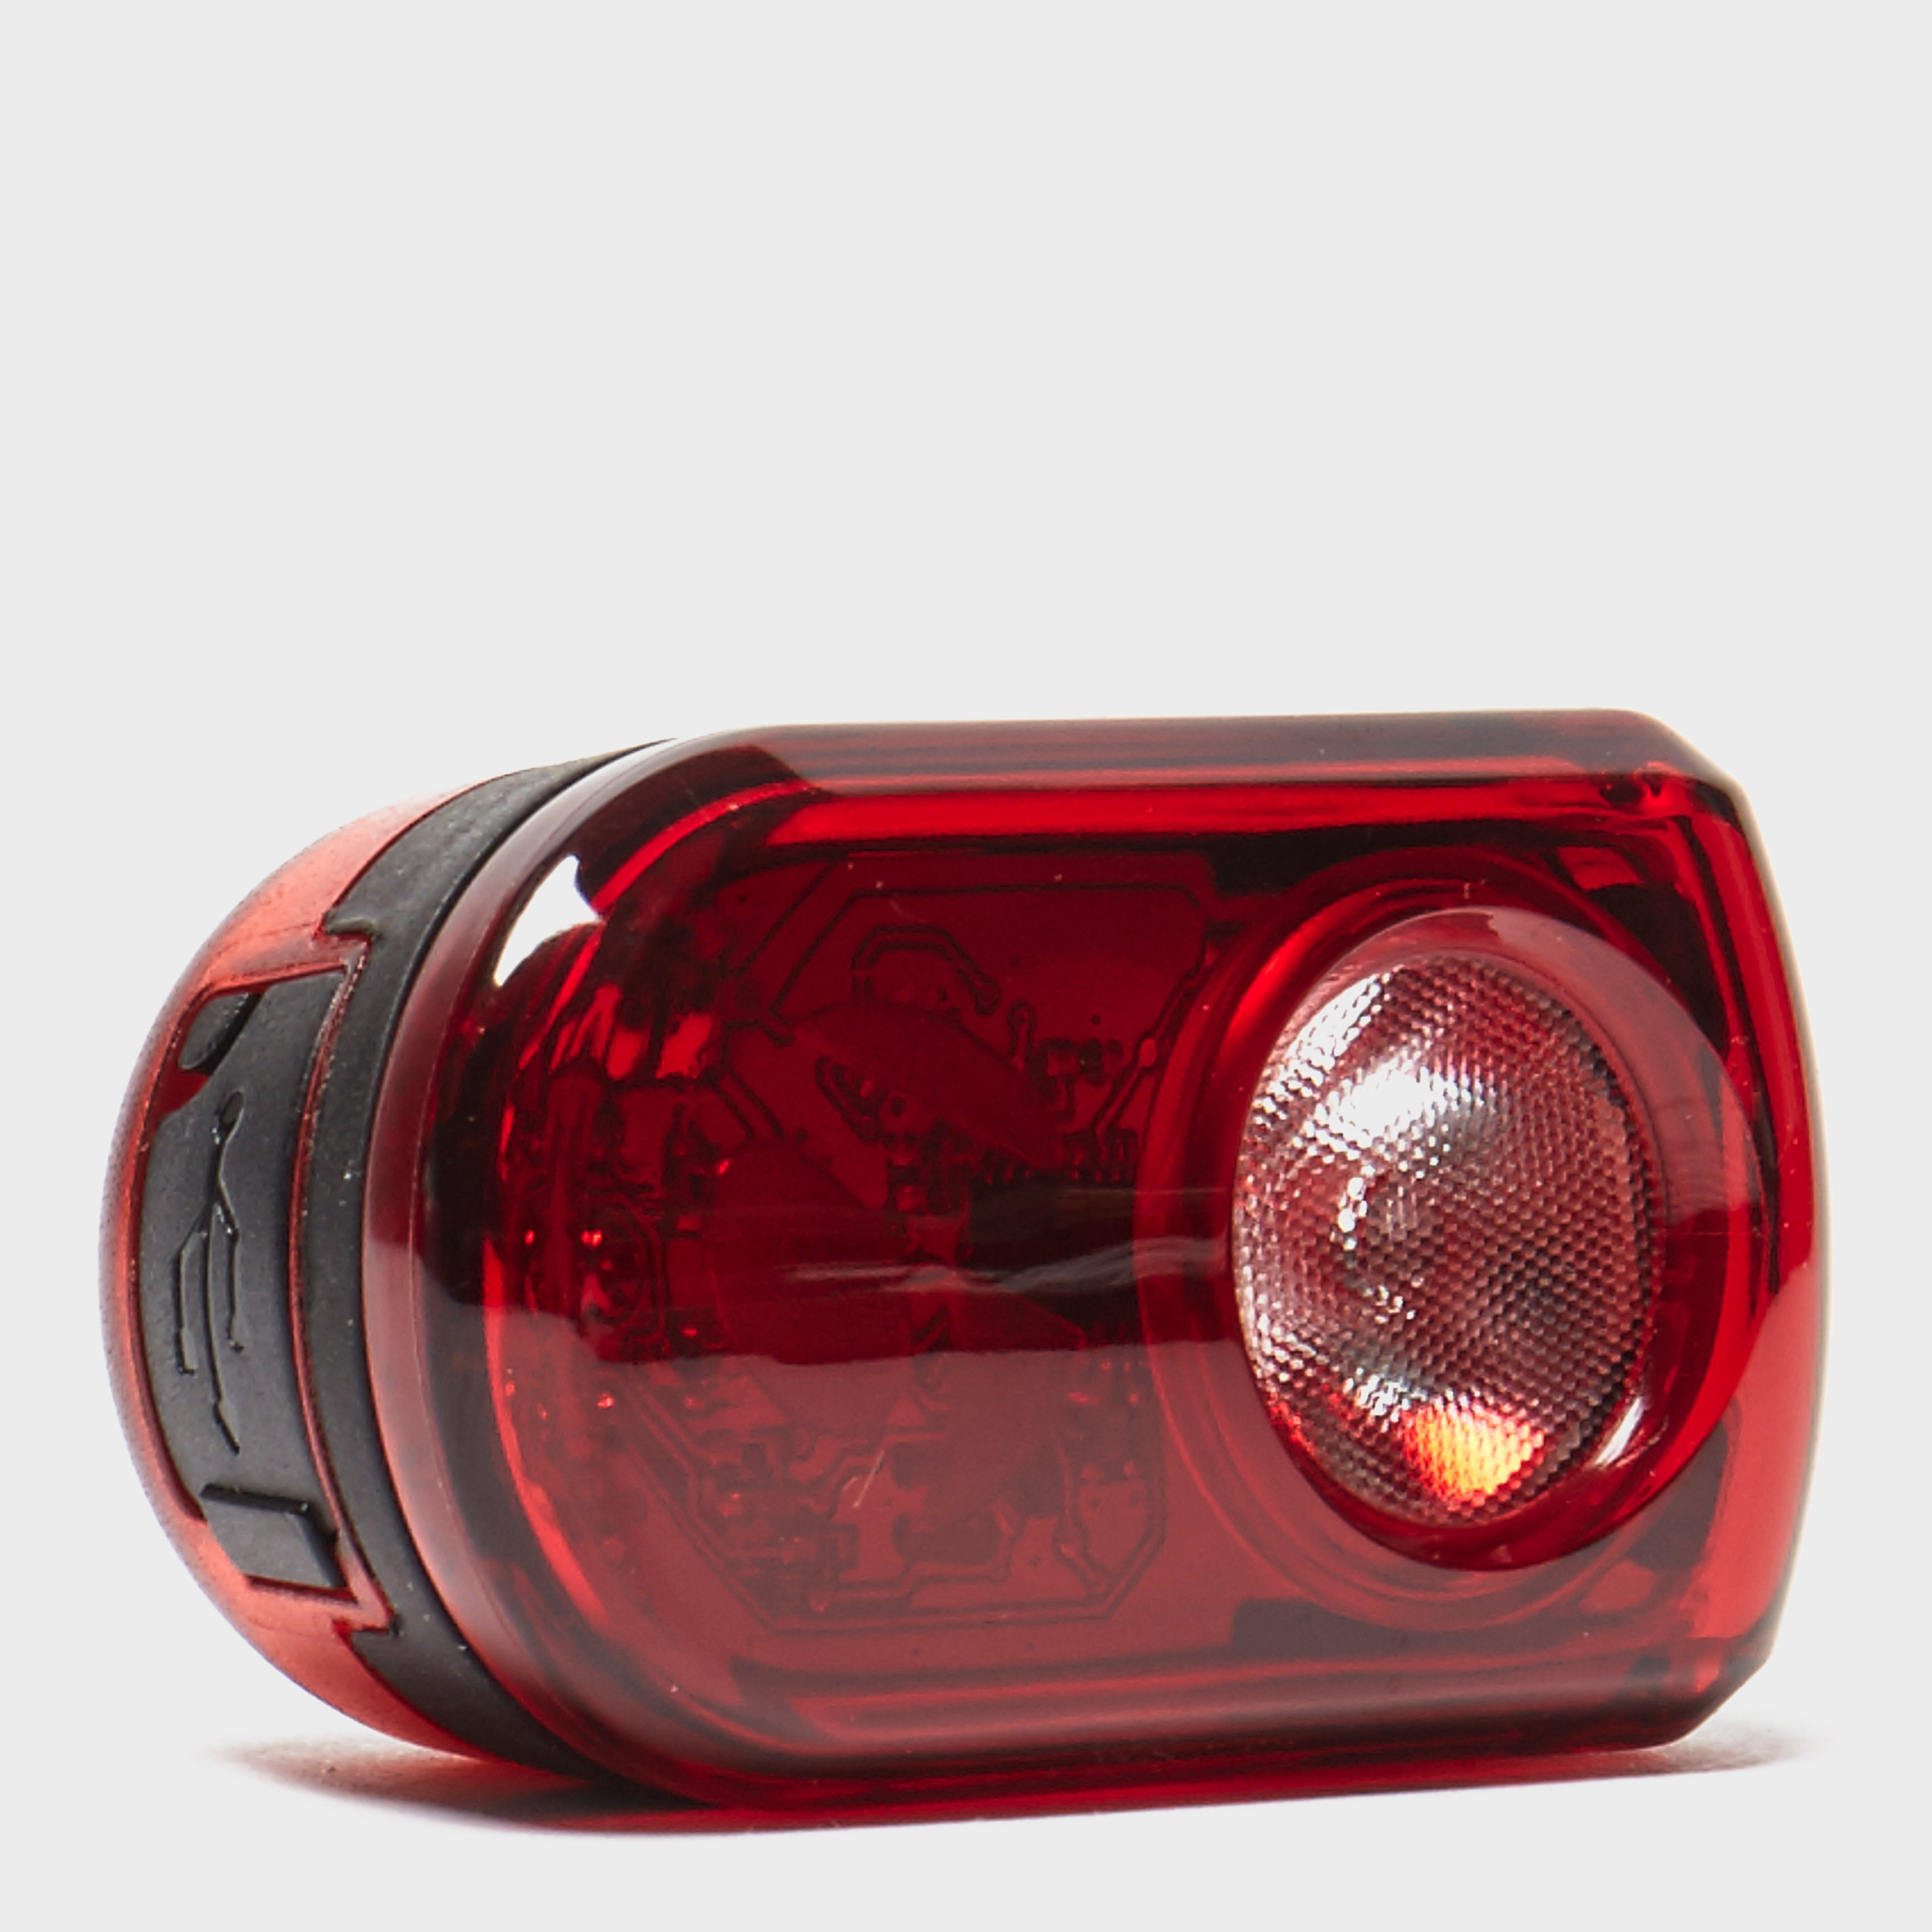 BONTRAGER Flare RearCycle Light